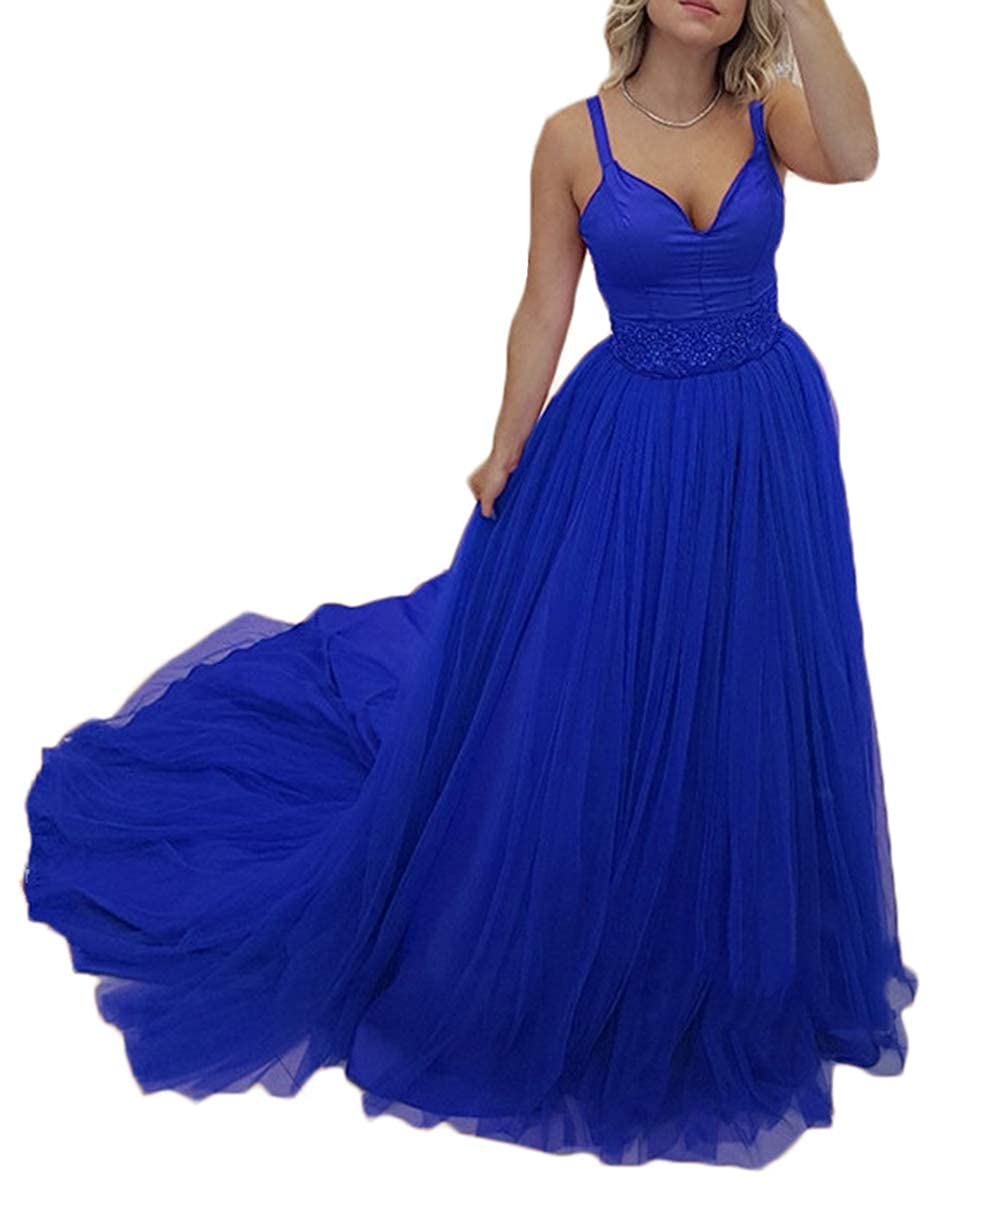 Royal bluee alilith.Z Sexy Spaghetti Strap Prom Dresses 2019 Long Beaded Appliques Formal Evening Dress Party Gowns for Women Tulle Train